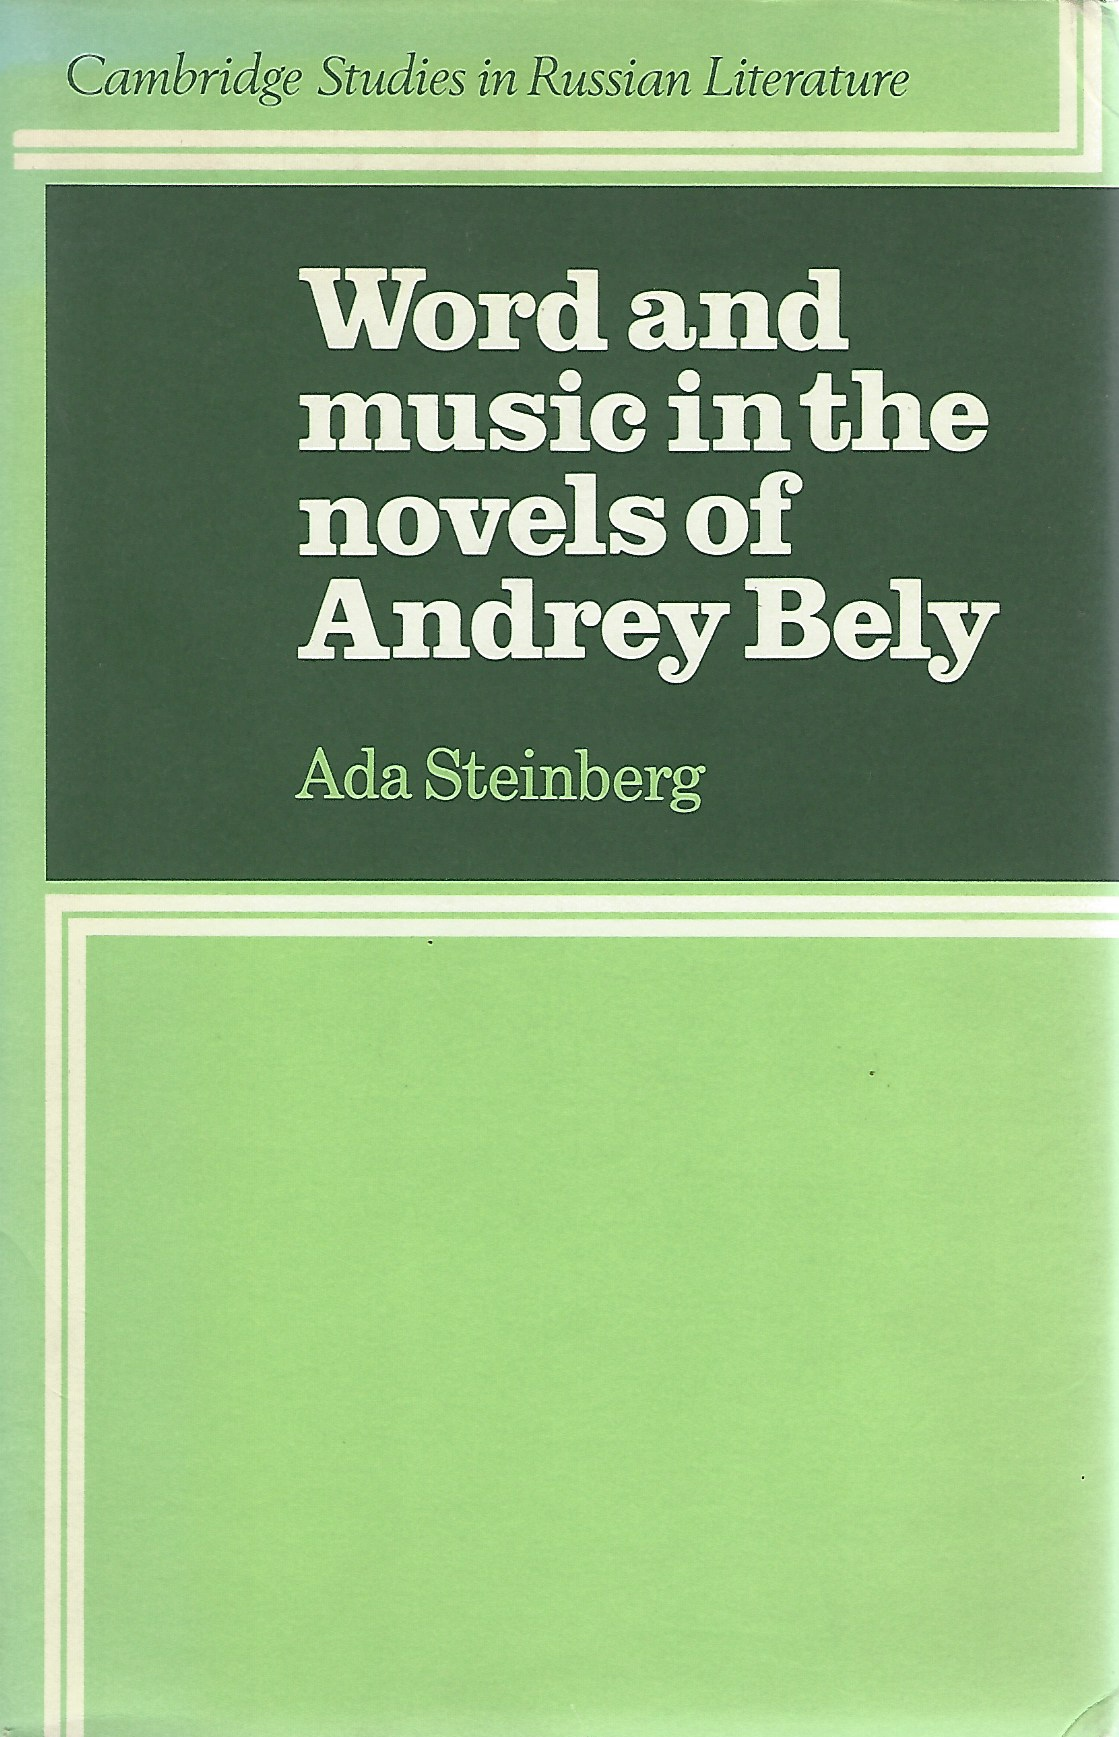 Image for Word and Music in the Novels of Andrey Bely (Cambridge Studies in Russian Literature)